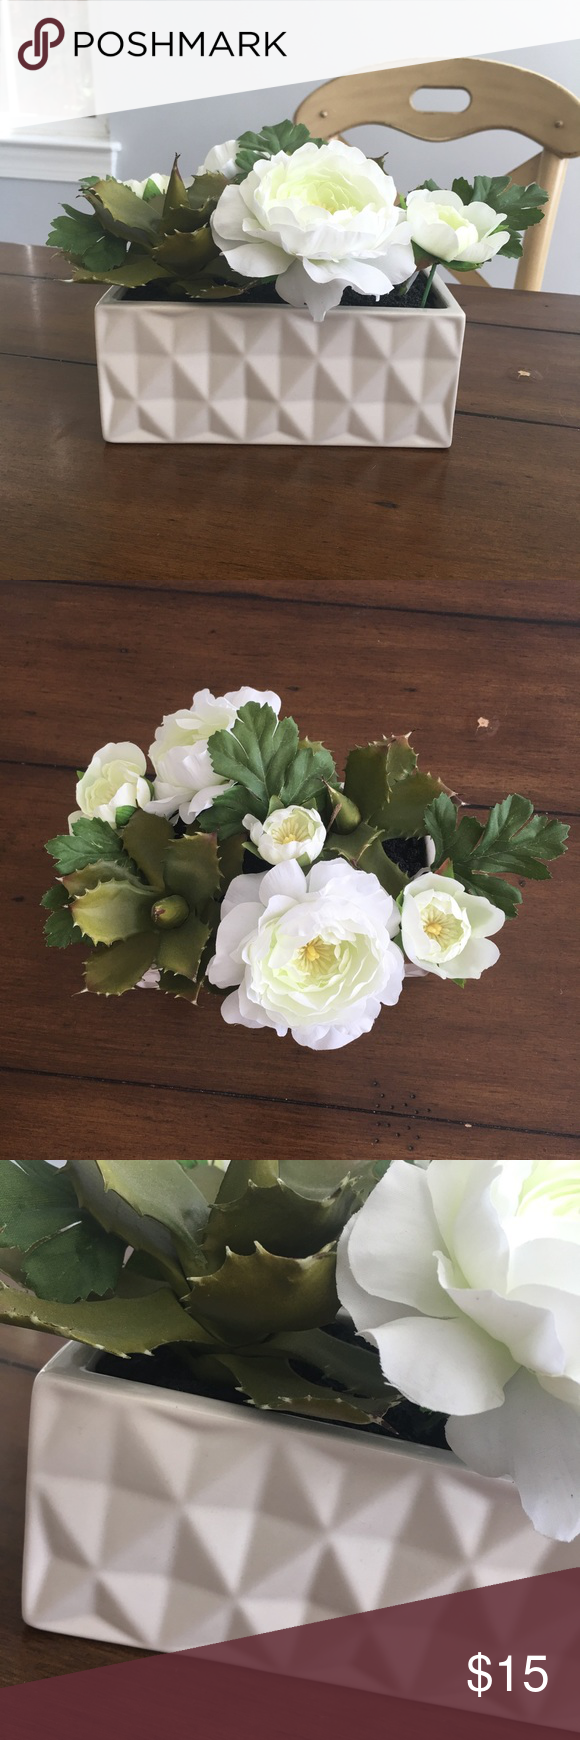 """Faux Flowers Succulent Geometric Potted Plant Well used condition. Measures 7"""" L x 4"""" W x 6"""" H. 🐶 Comes from a smoke-free, but not pet-free home. ➡️ Offers welcomed. 🚫 No trades. No holds. 📦 Fast shipping! 👰🏻 Saving up for my wedding, so considering all reasonable offers! Other"""